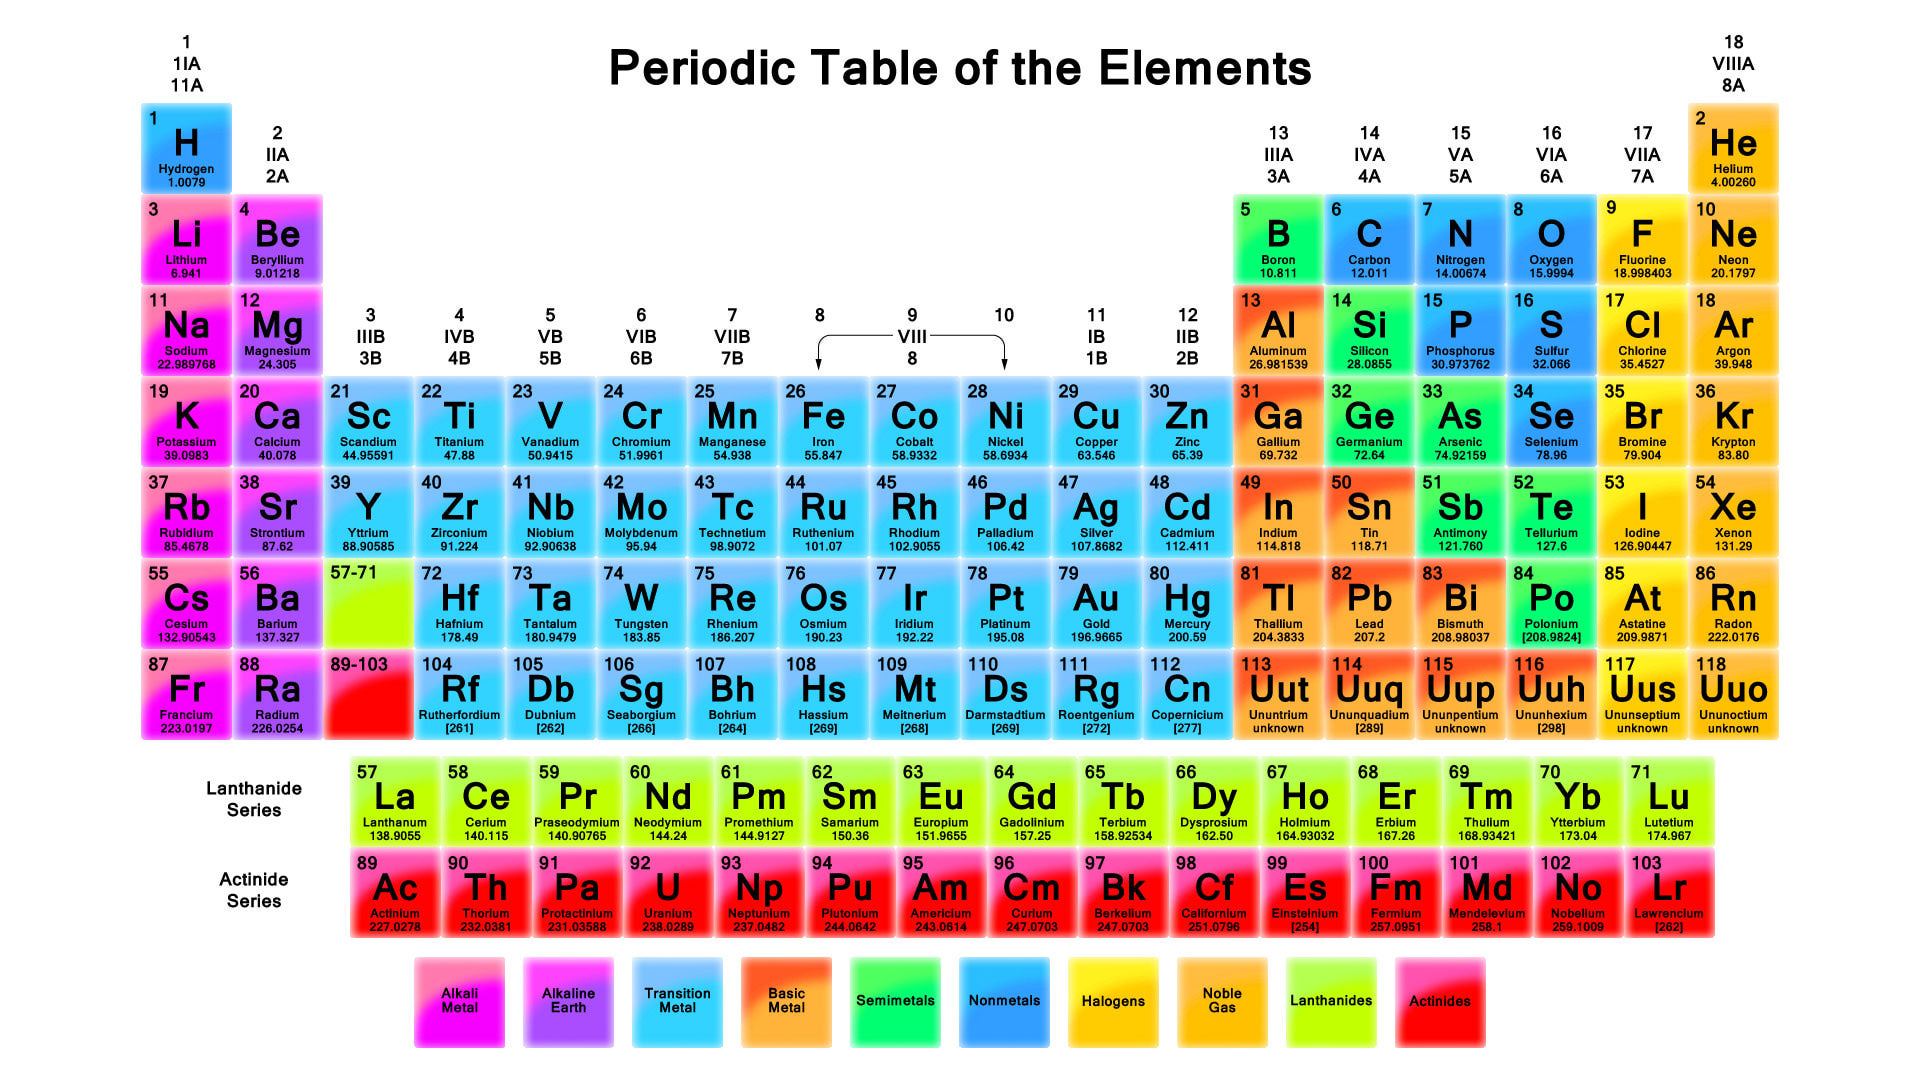 Periodic table electrons elements en gas halogens metalloids periodic table electrons elements en gas halogens metalloids metals noble periodic reactivity glogster edu interactive multimedia posters urtaz Choice Image